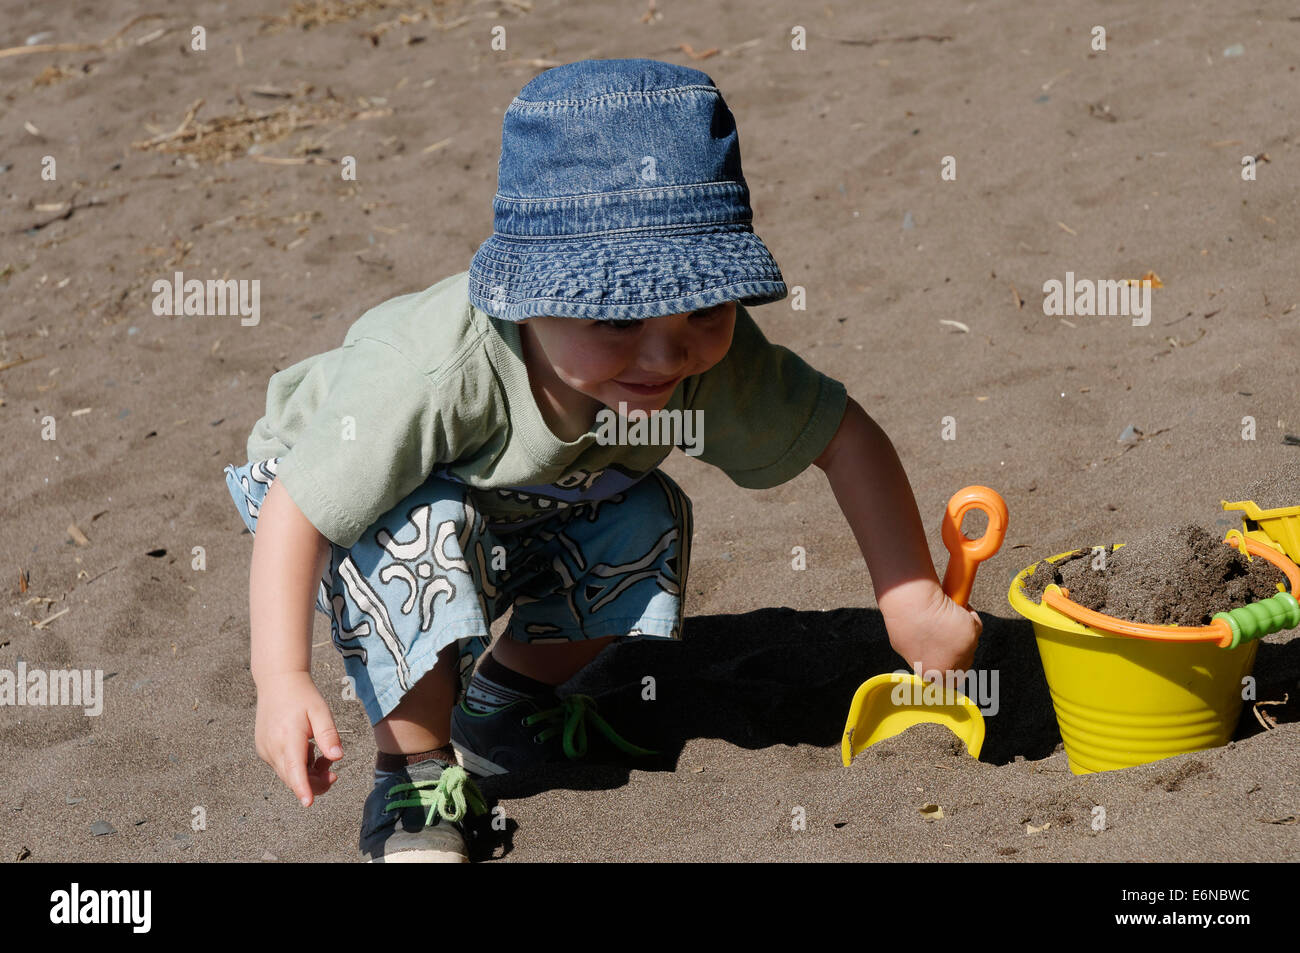 A young boy playing with a bucket and spade in the sand - Stock Image